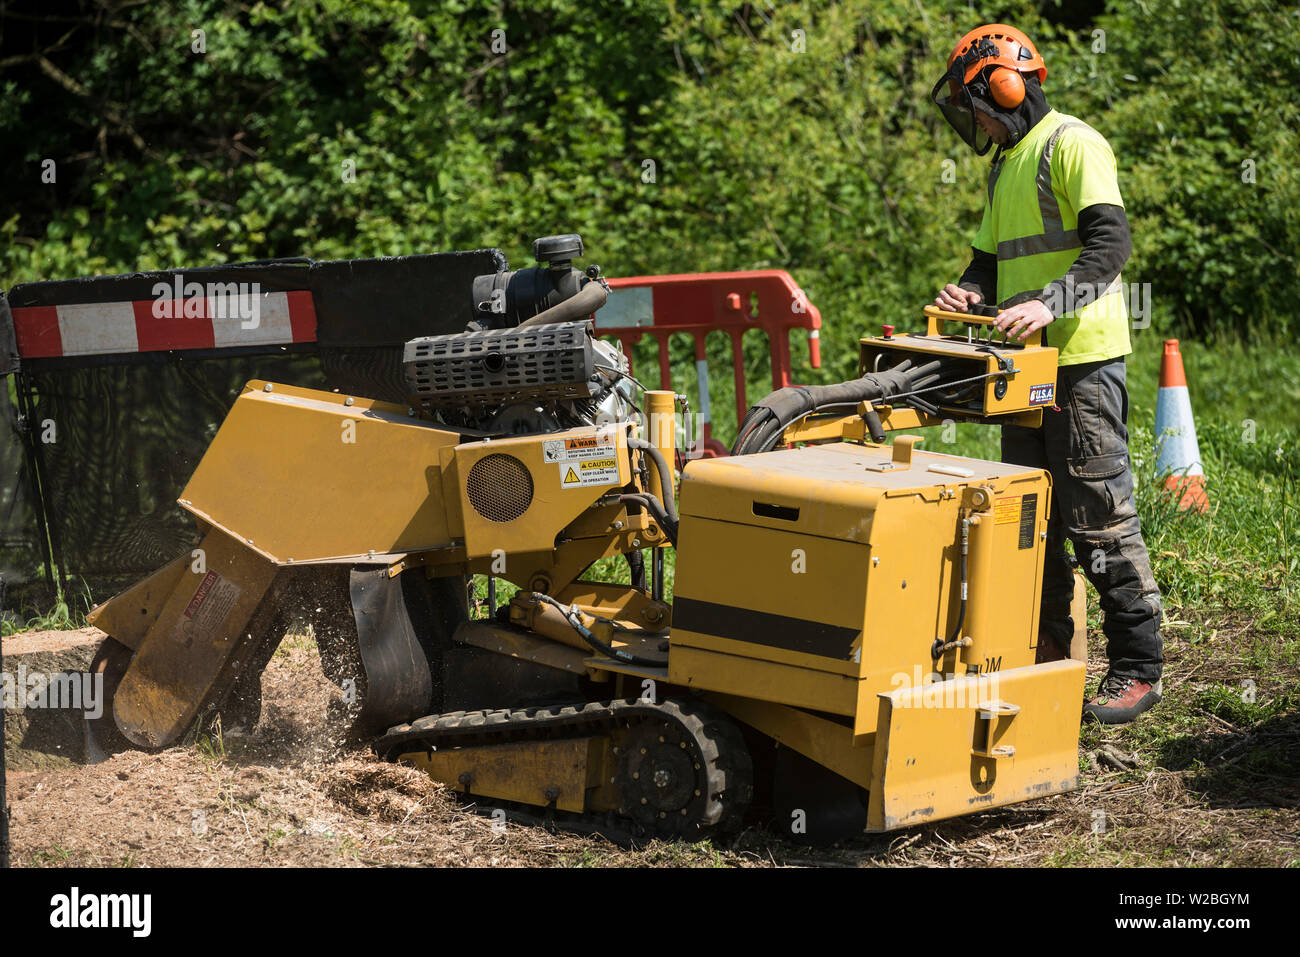 A man in full PPE is seen controlling an industrial stump grinder. - Stock Image